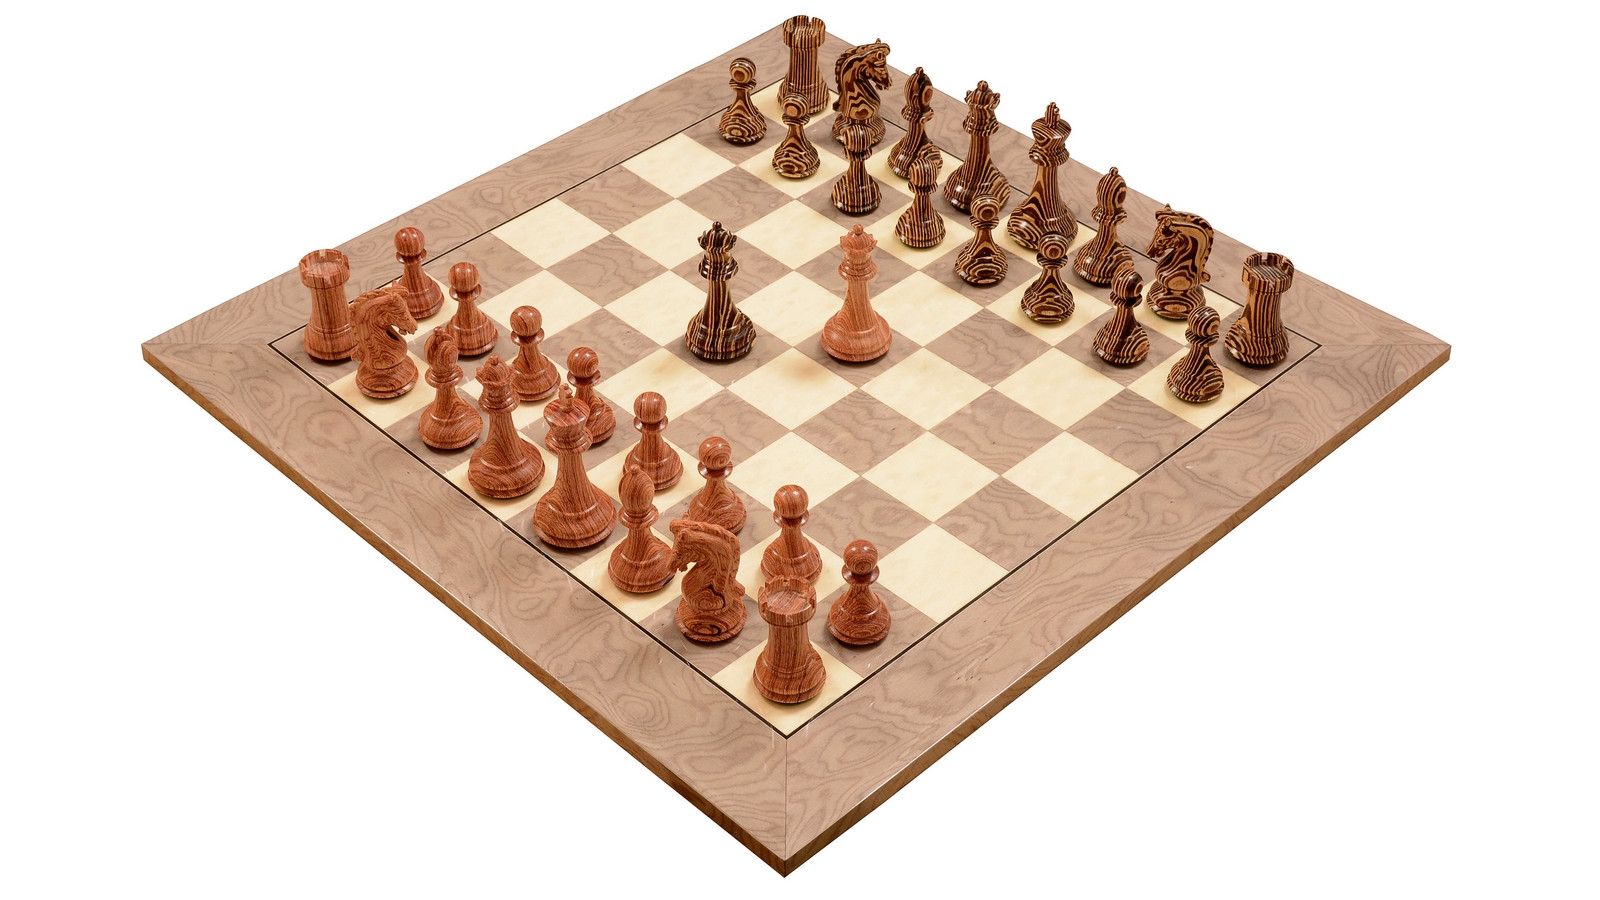 """Combo of Limited Edition Imperial Collector Series (Sinquefield Cup 2014) Wooden Chess Set & Deluxe Grey Ash Burl & White Erable Hi Gloss Finish Chess Board - 3.75"""" King"""